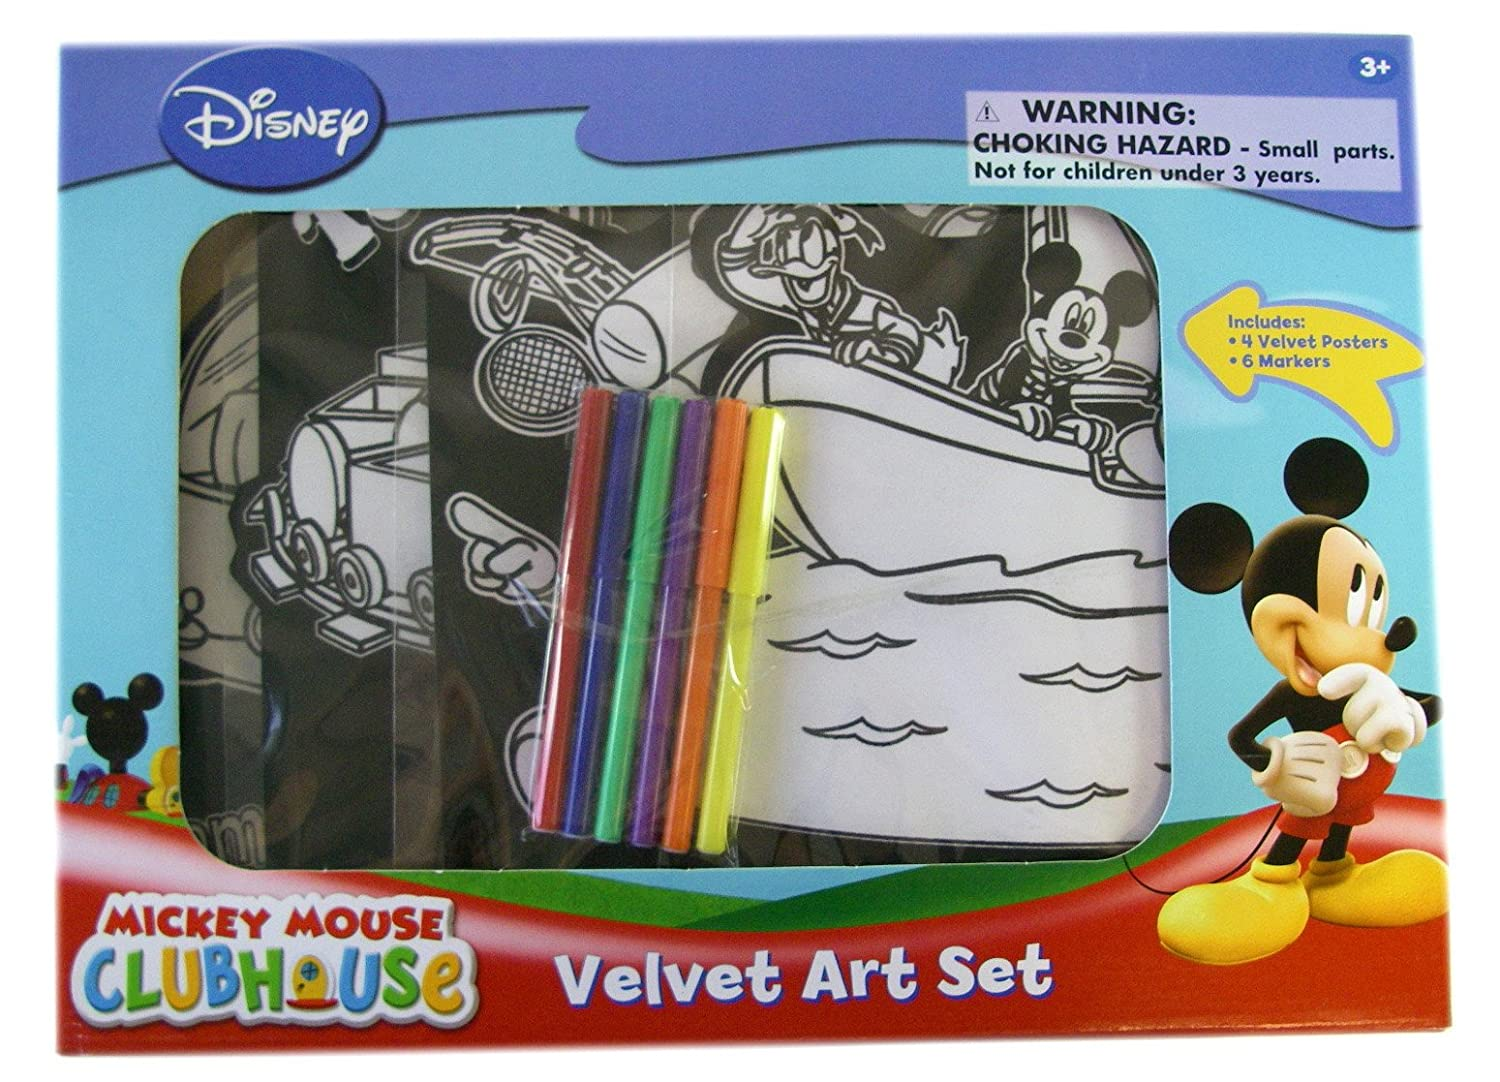 Disney velvet coloring posters - Amazon Com Disney Mickey Mouse Velvet Mickey Art Set Mickey Mouse Coloring Poster With Markers Toys Games